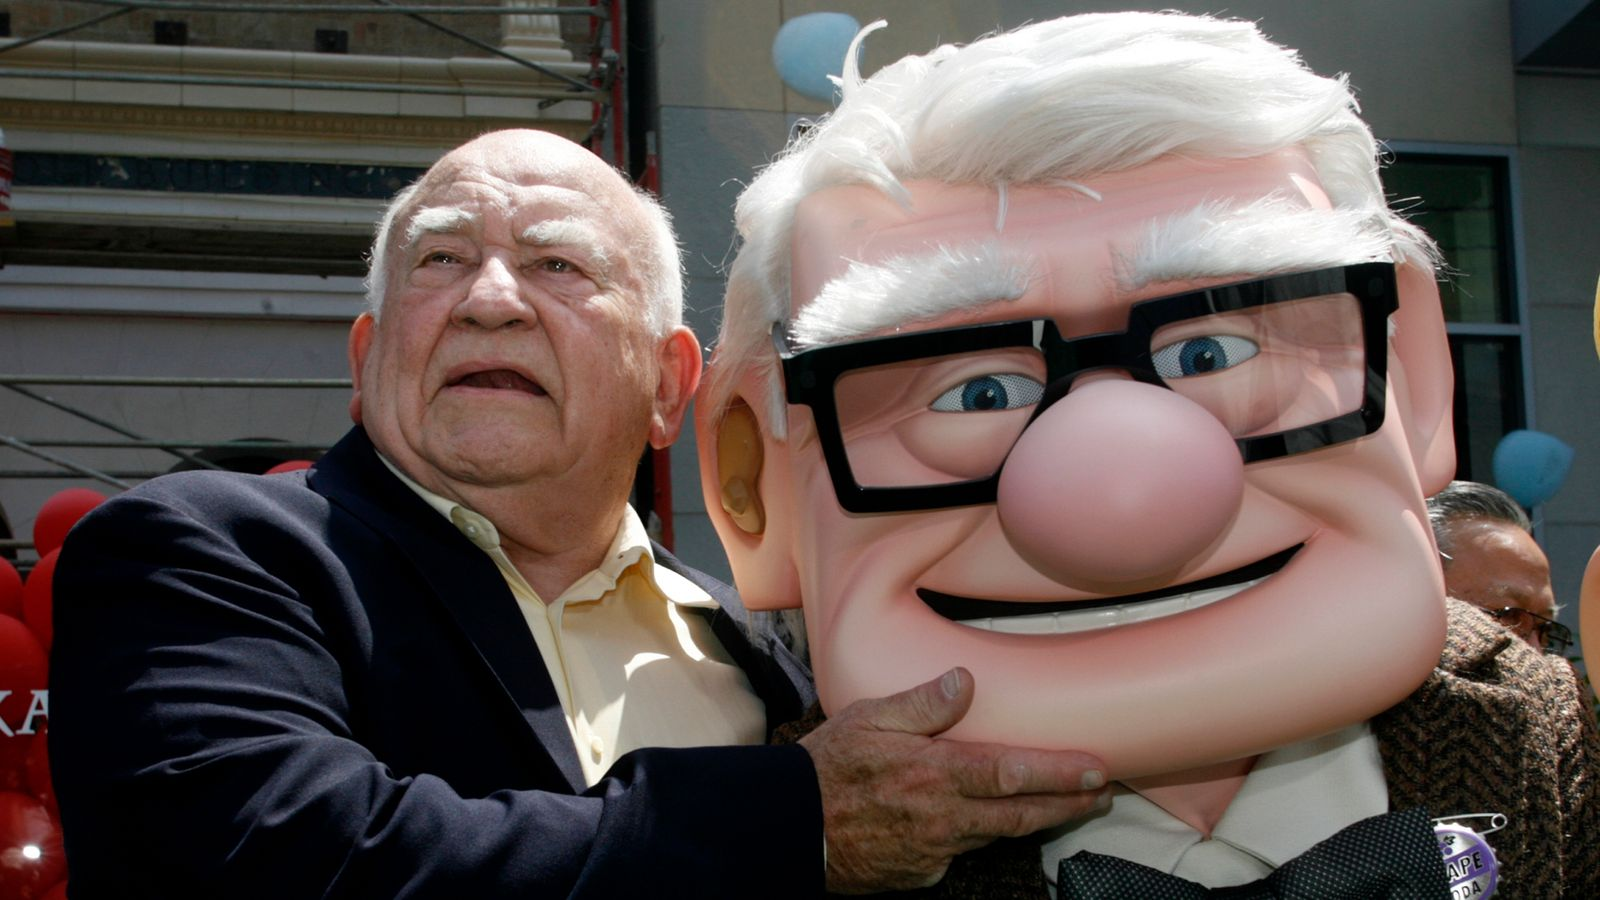 Ed Asner: Emmy-winning actor who became known for leading voice role in Pixar film Up dies aged 91